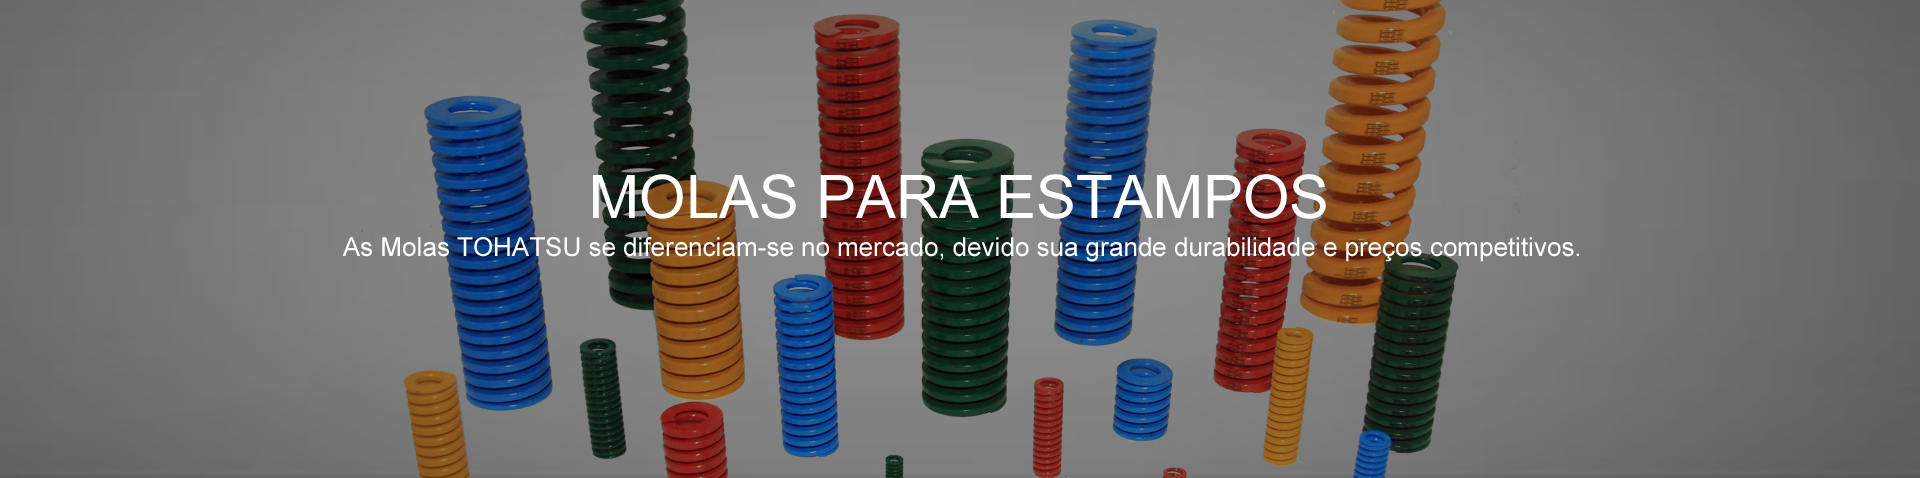 Slide4_Molas_Estampos